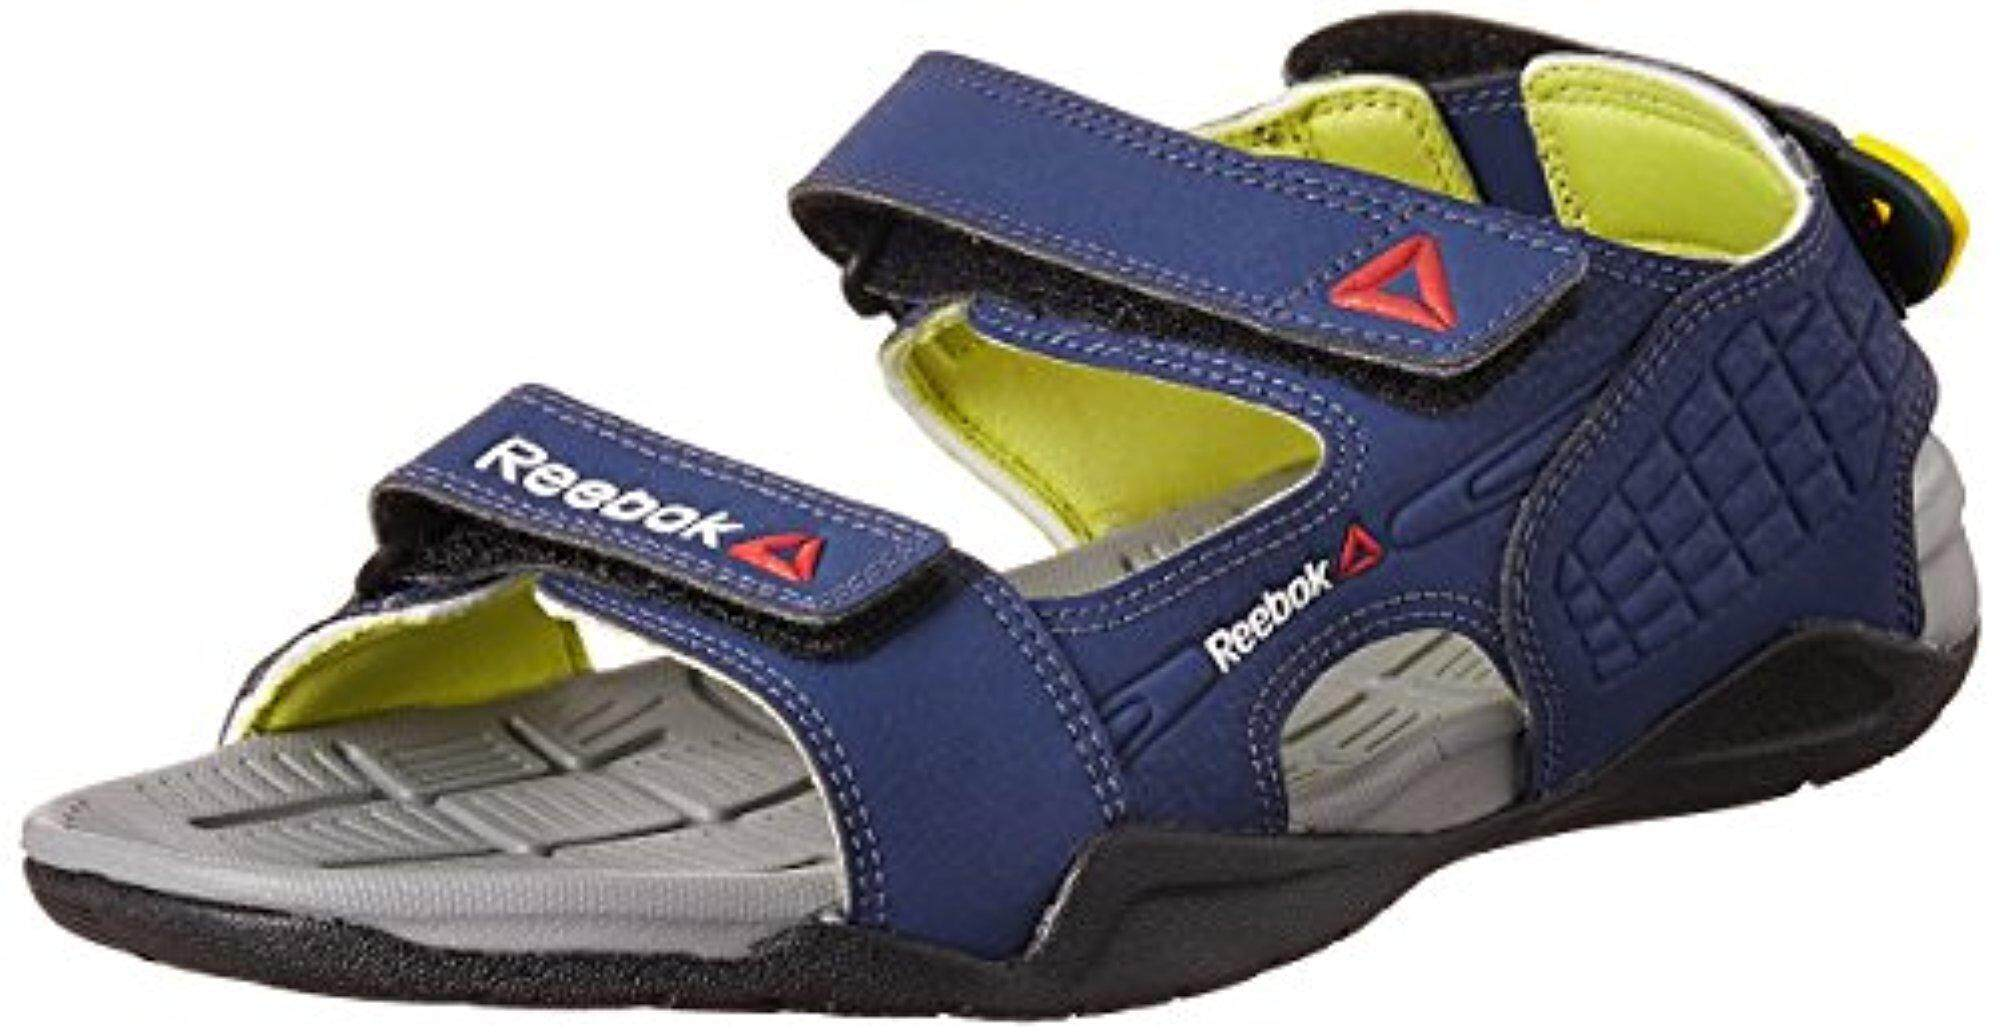 Reebok Men's Adventure Z Supreme Blue, Green, Grey and Black Athletic and Outdoor Sandals - 7 UK/India (40.5 EU)(8 US) - intl